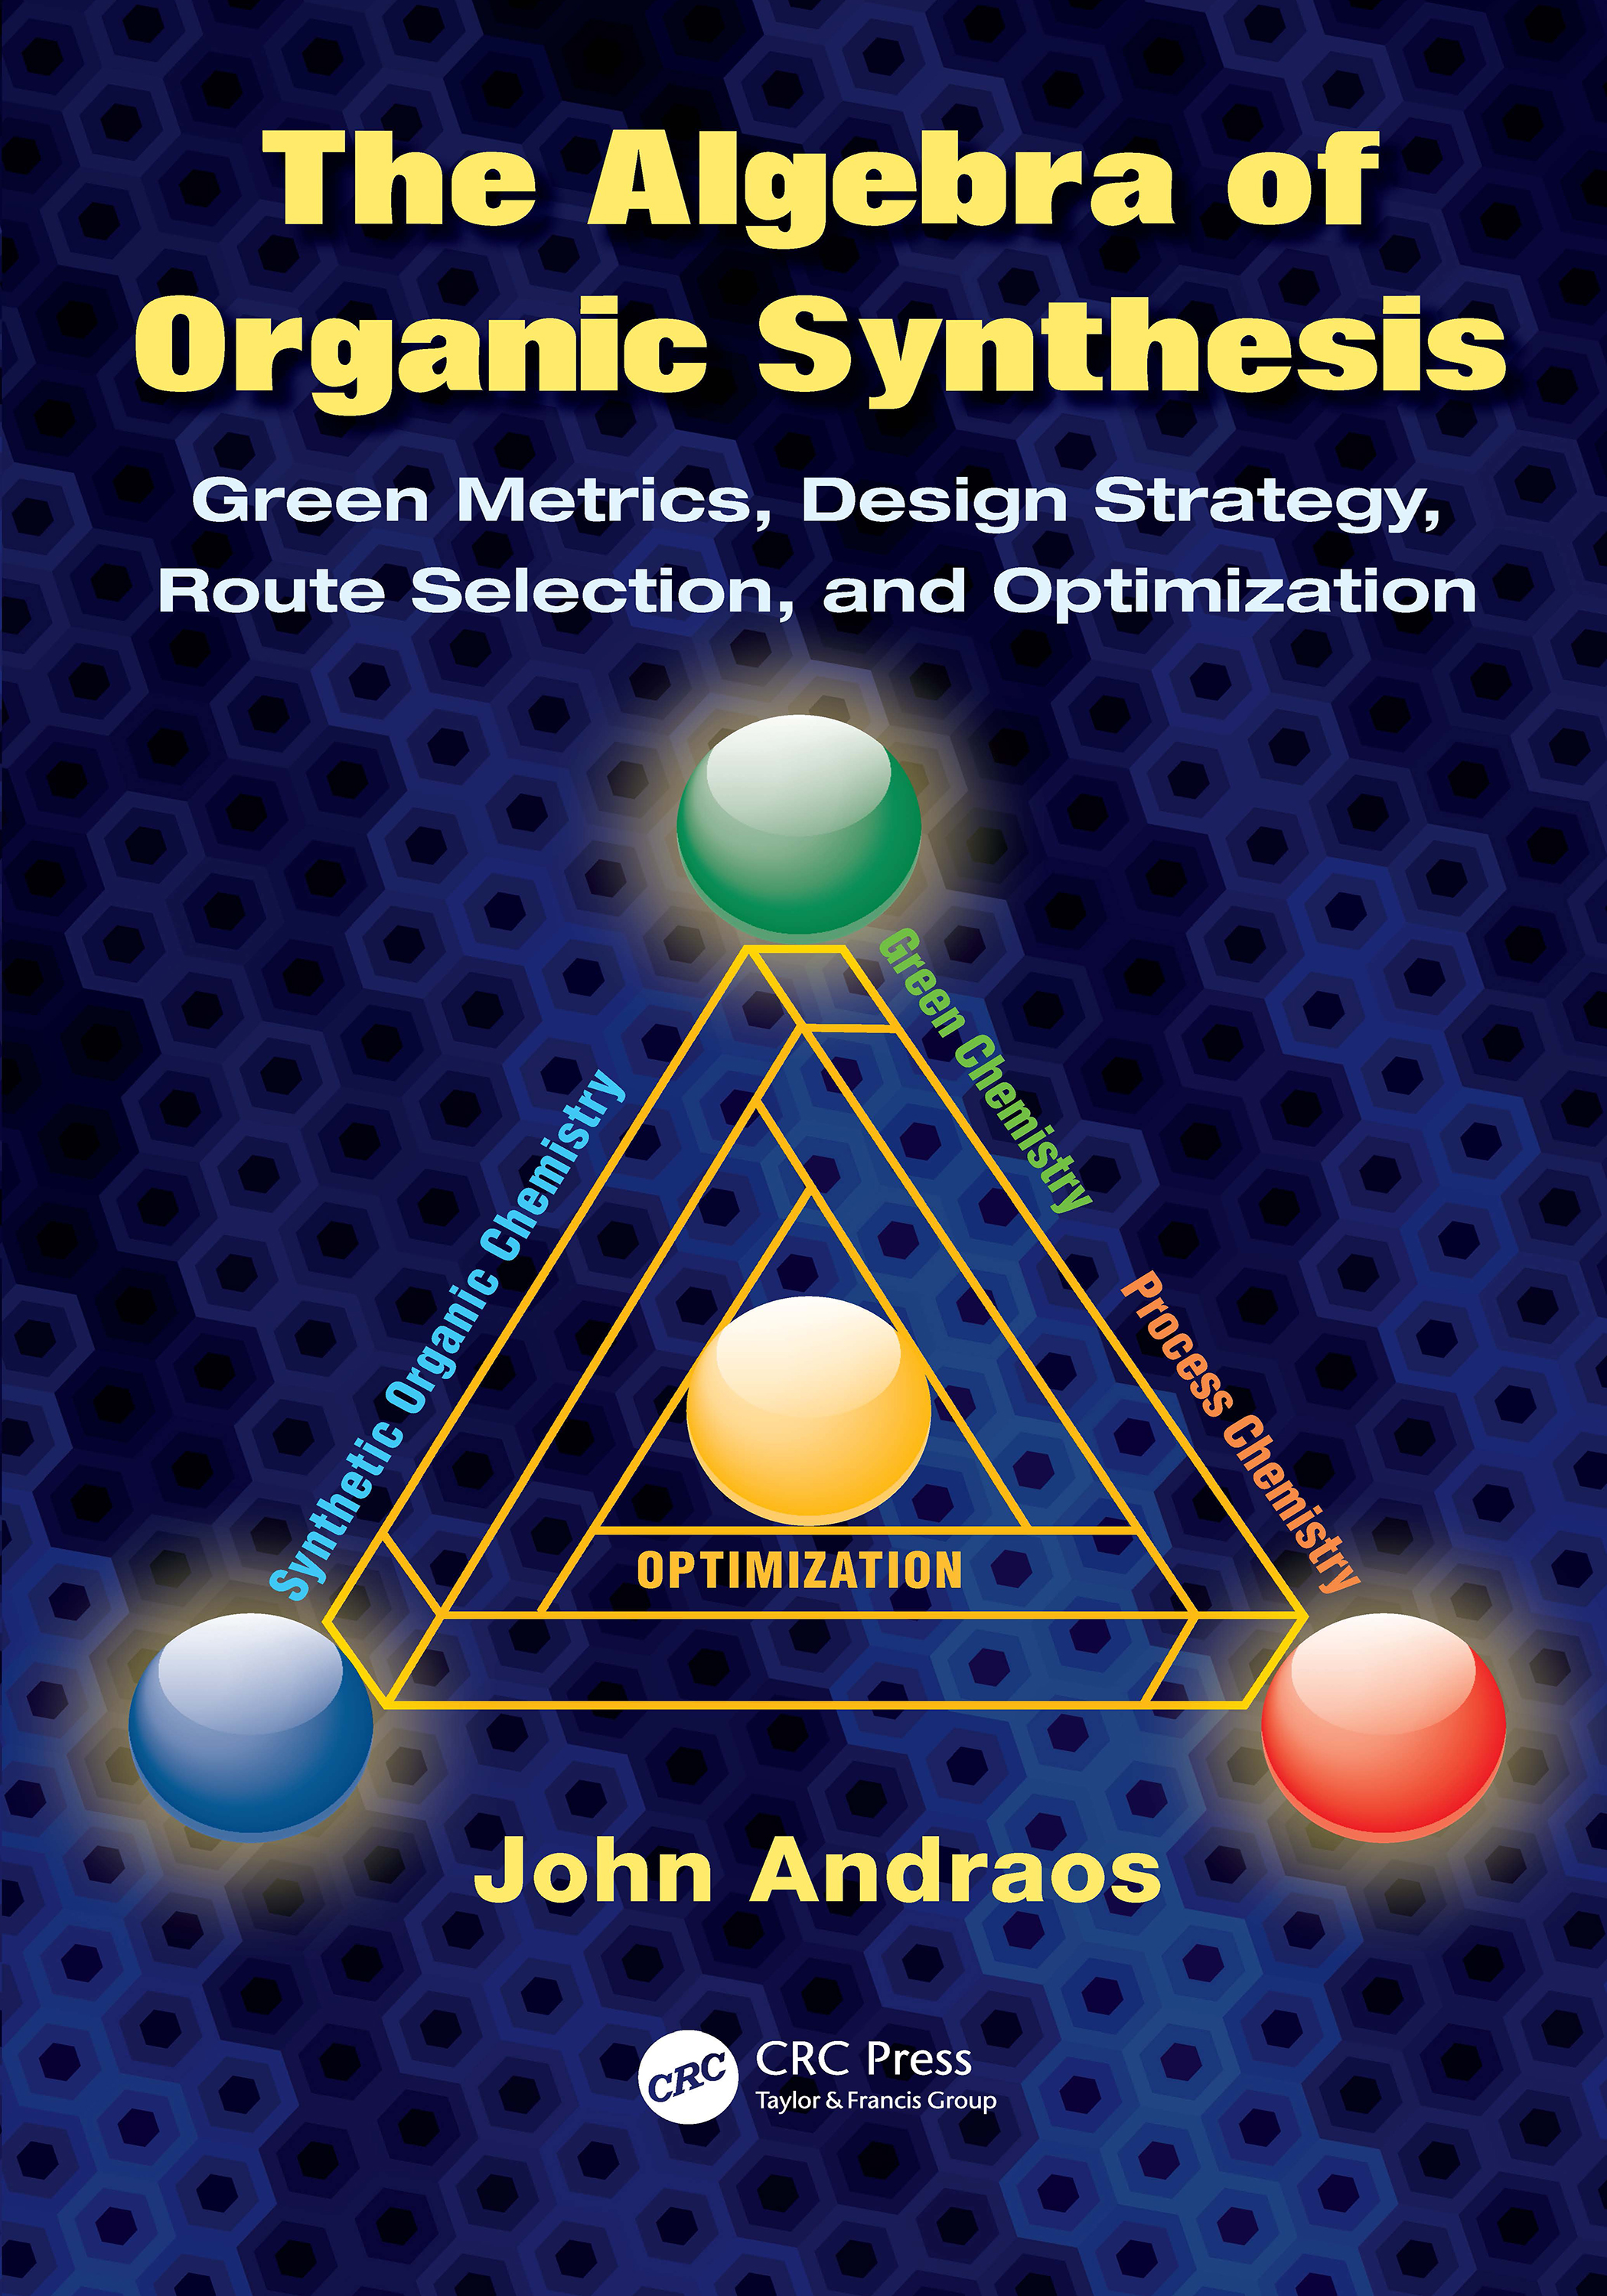 The Algebra of Organic Synthesis: Green Metrics, Design Strategy, Route Selection, and Optimization book cover